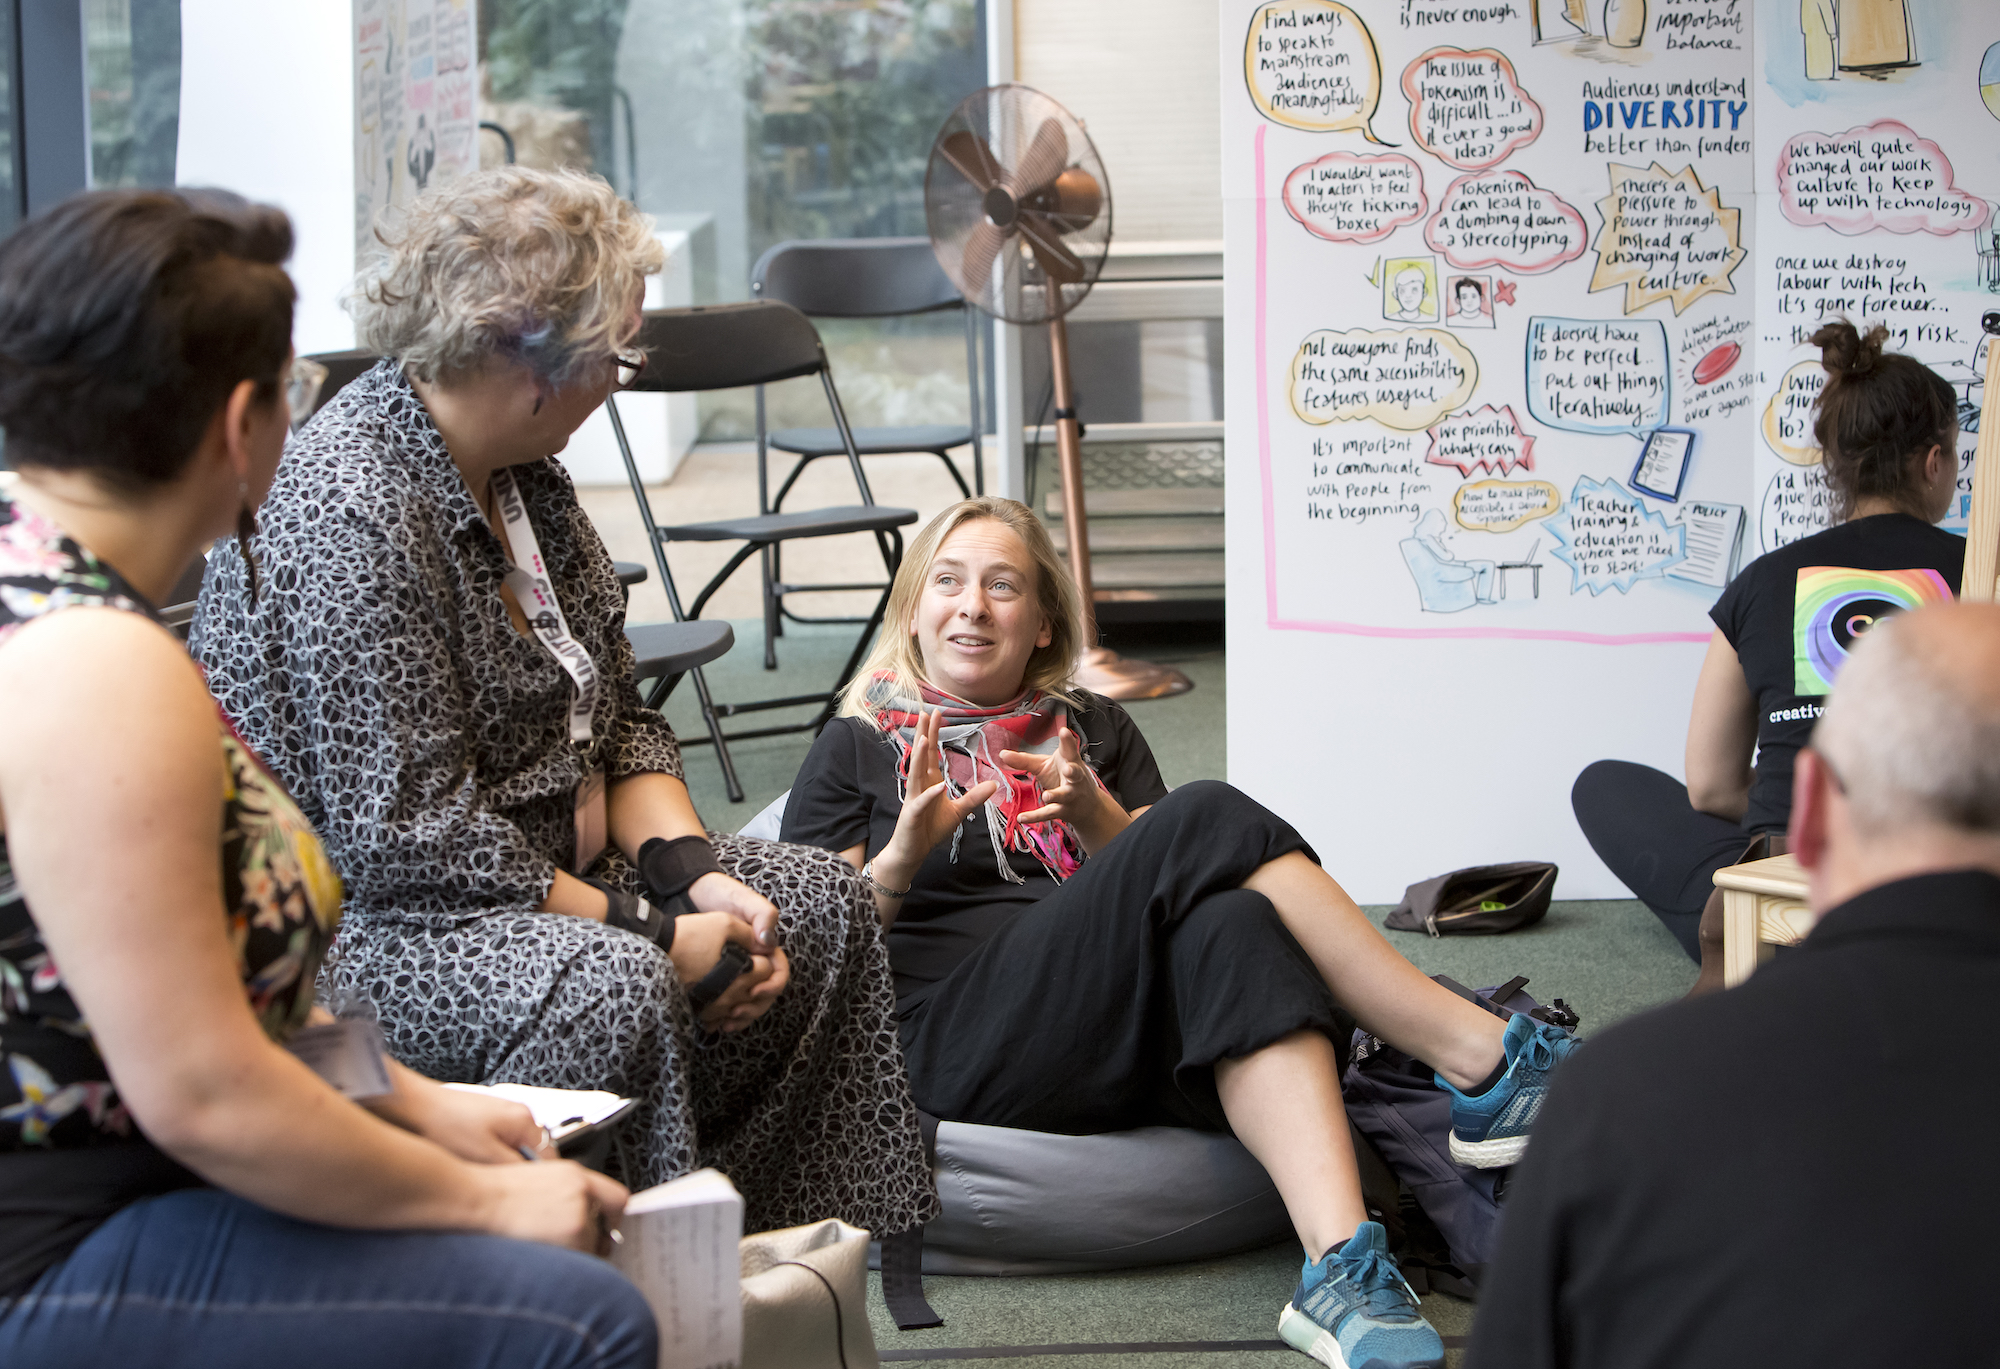 A group of Symposium delegates sitting around talking. Some are on chairs and one is on a bean bag on the floor. In the background we see a fan and a board filled with colourful visual notes.